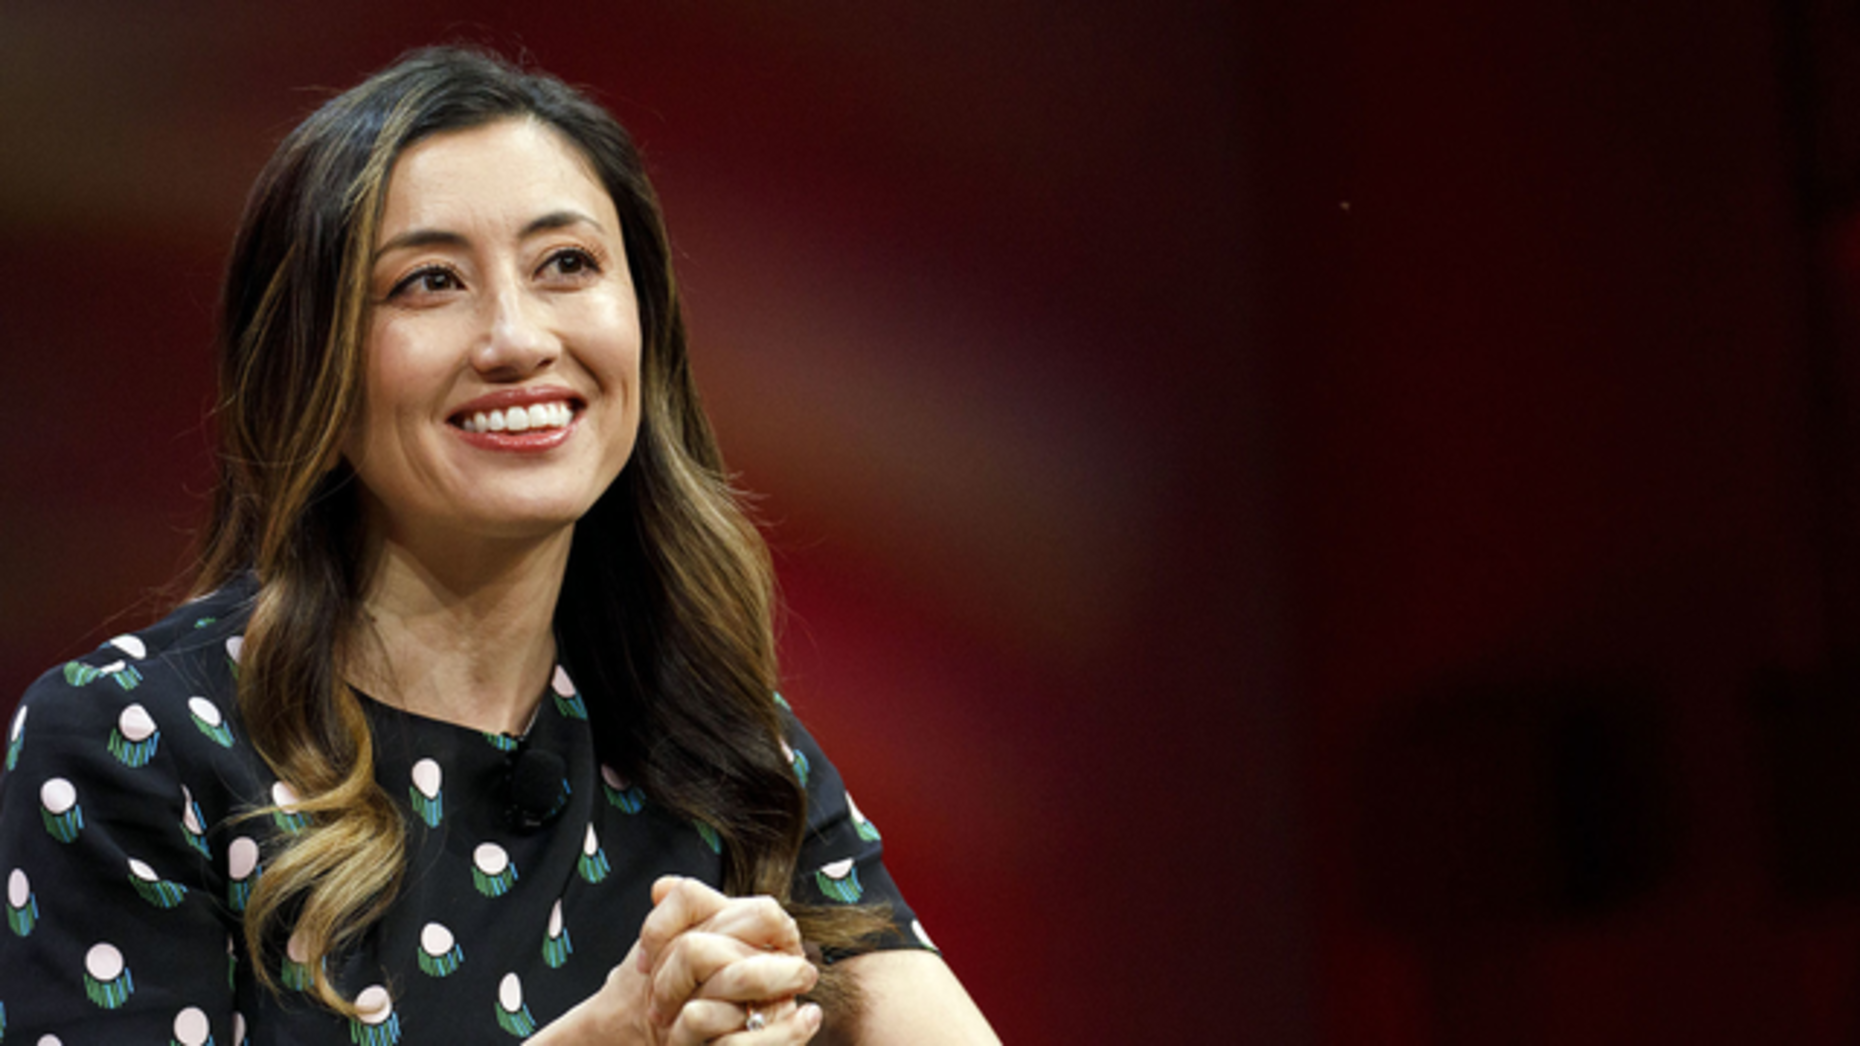 Stitch Fix CEO Katrina Lake. Photo by Bloomberg.